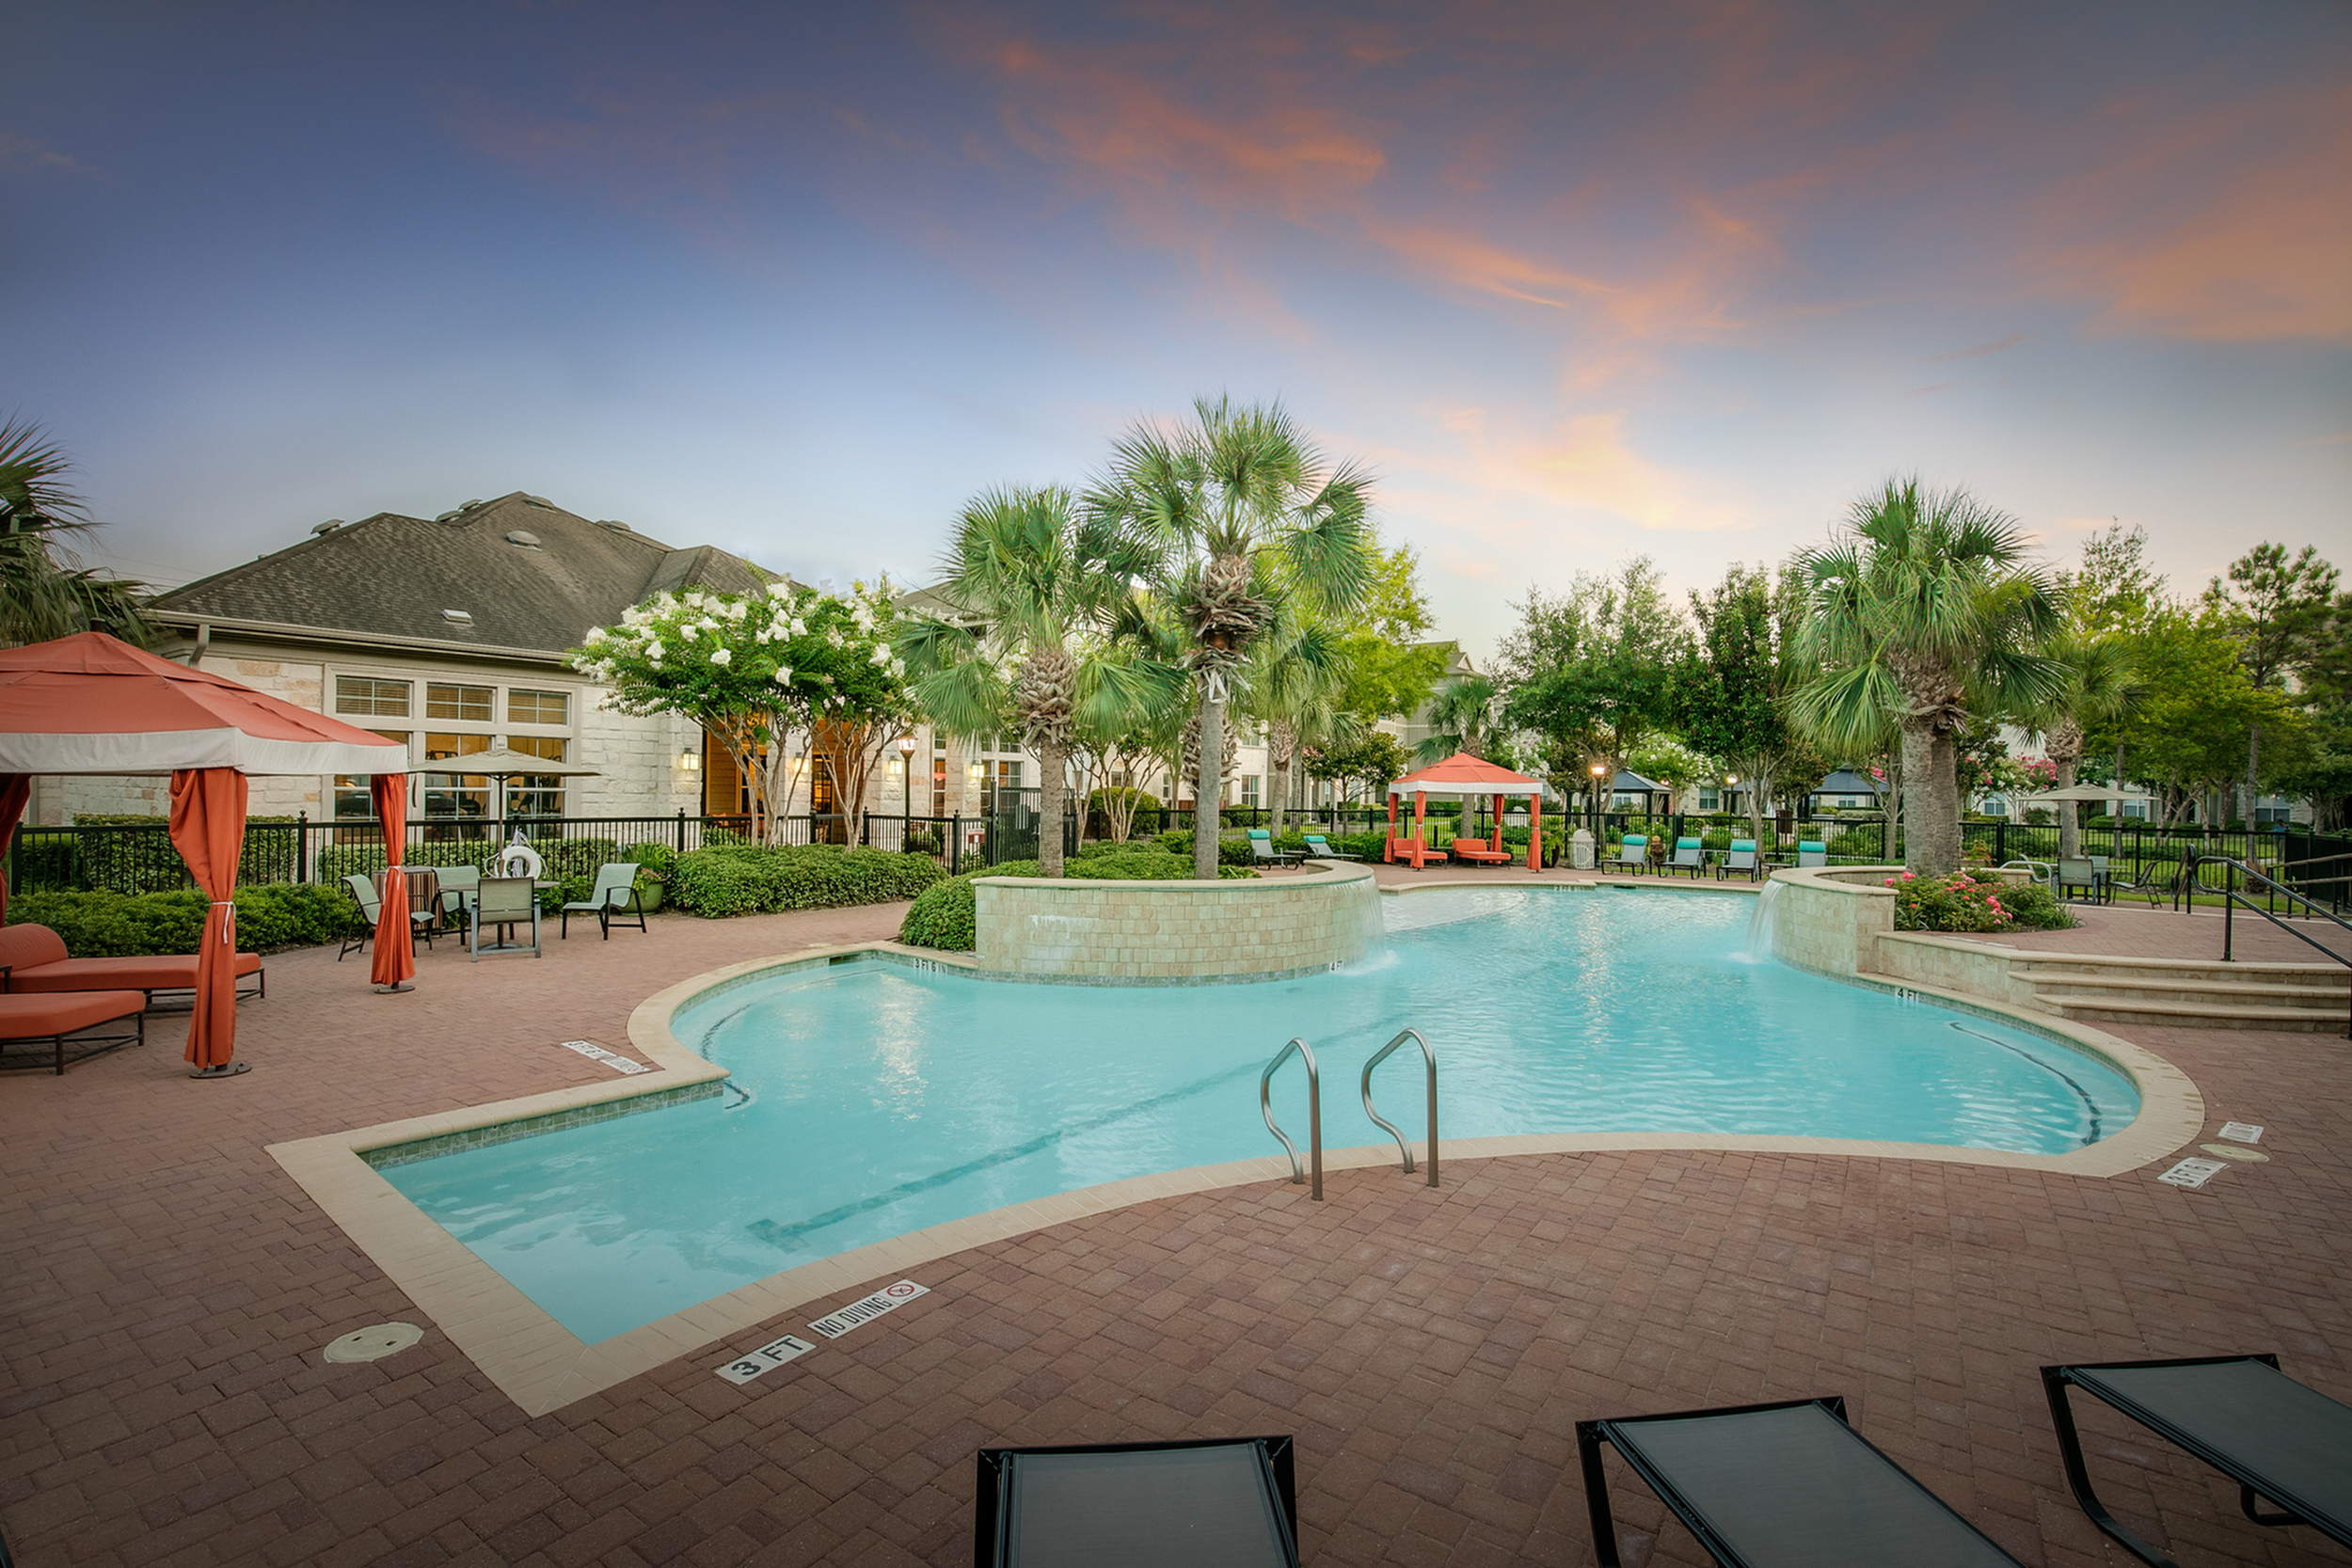 View of Resort Style Pool, Showing Cabanas, Loungers, Waterfall, and Loungers at Dusk at Retreat at Stafford Apartments